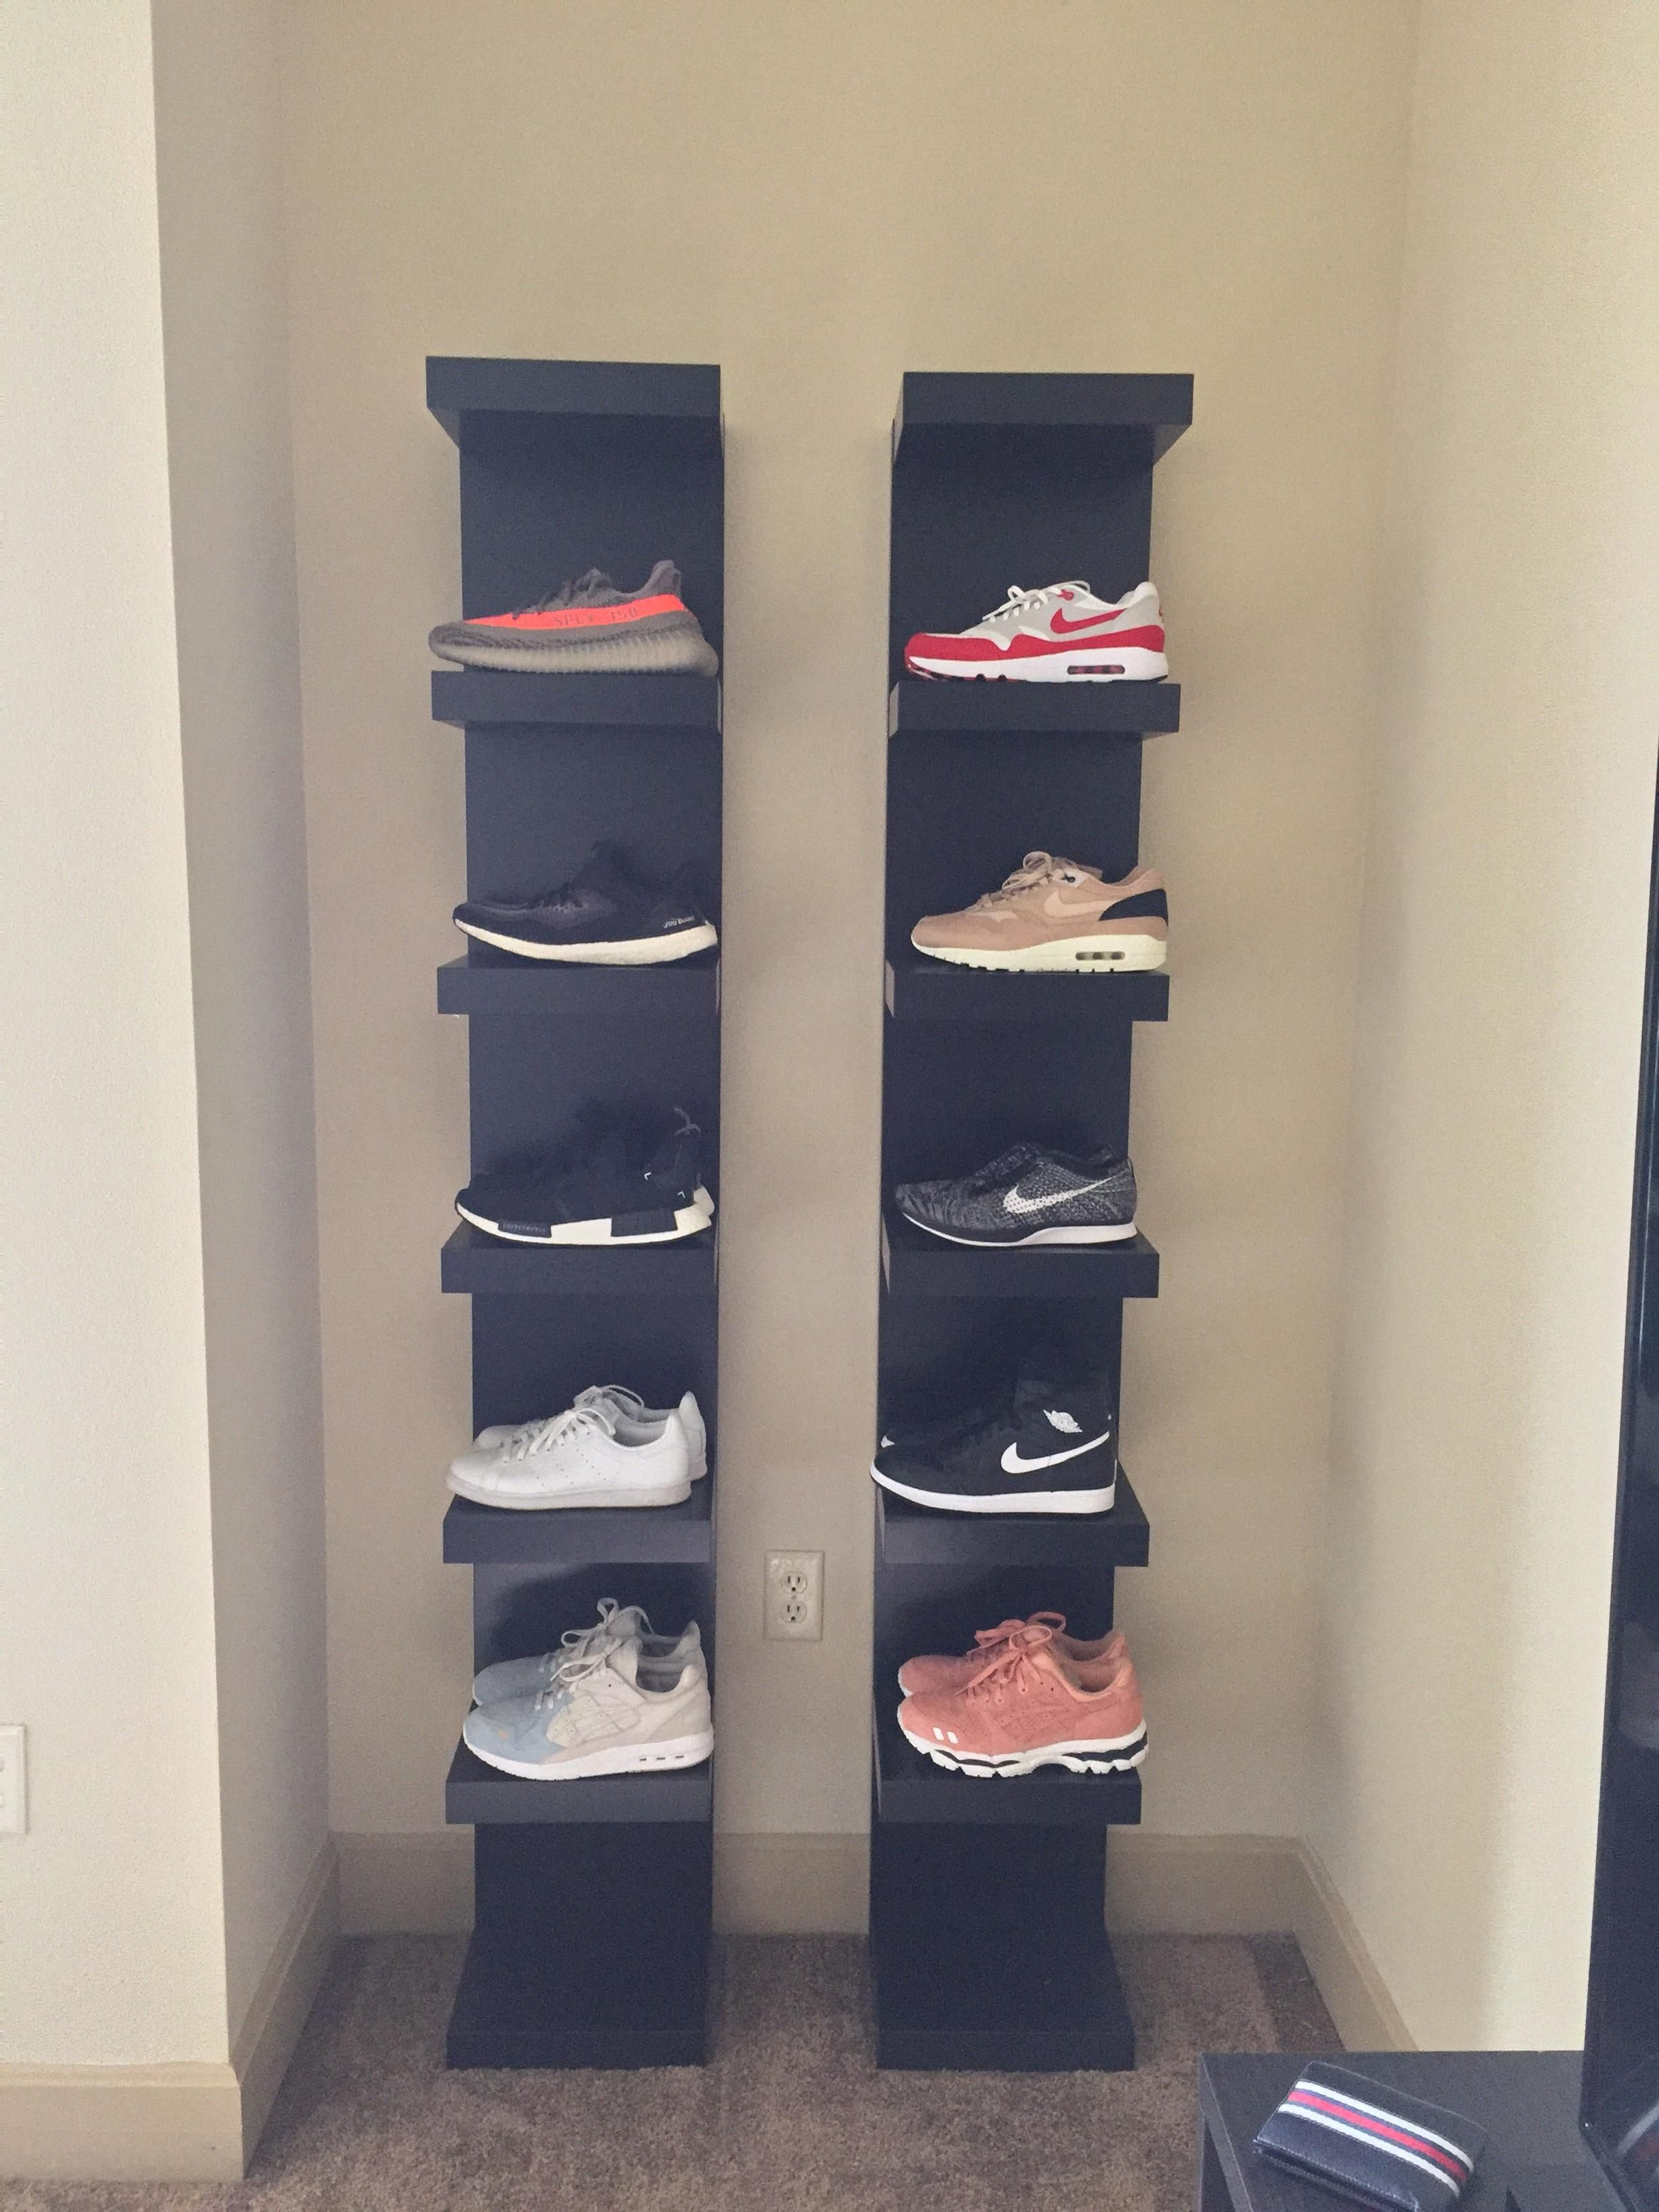 New to collecting shoes; Sorry about the overused lack shelves just moved  close to an ikea so I had to lol